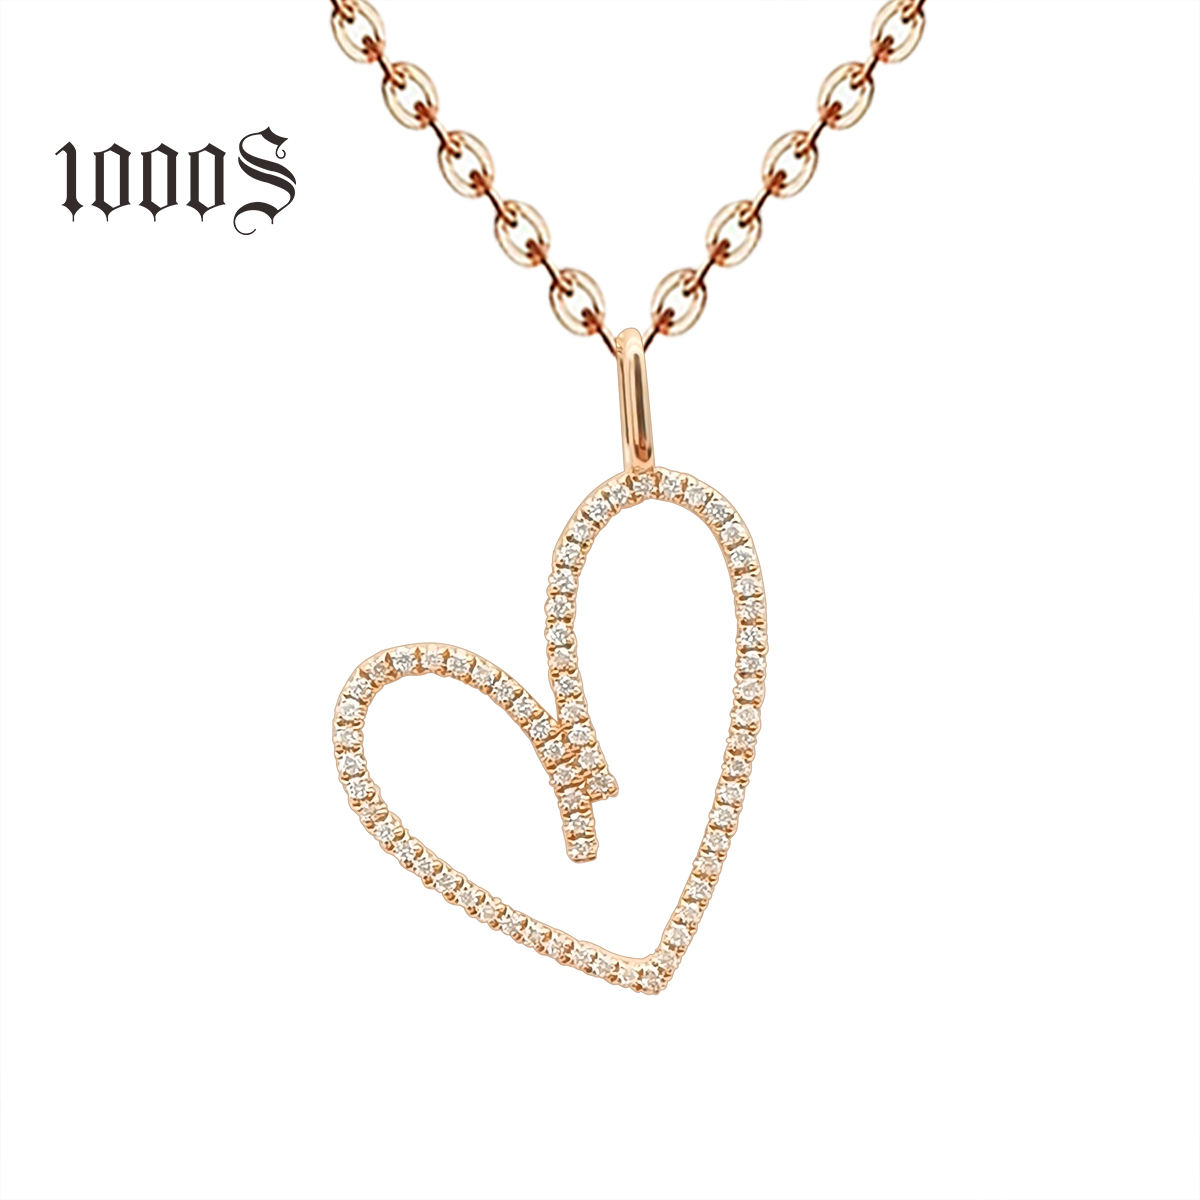 Luxury 18K Real Gold Necklace Trendy Design Dainty Long Drop 18K Solid Gold Diamond Necklace Women Jewelry